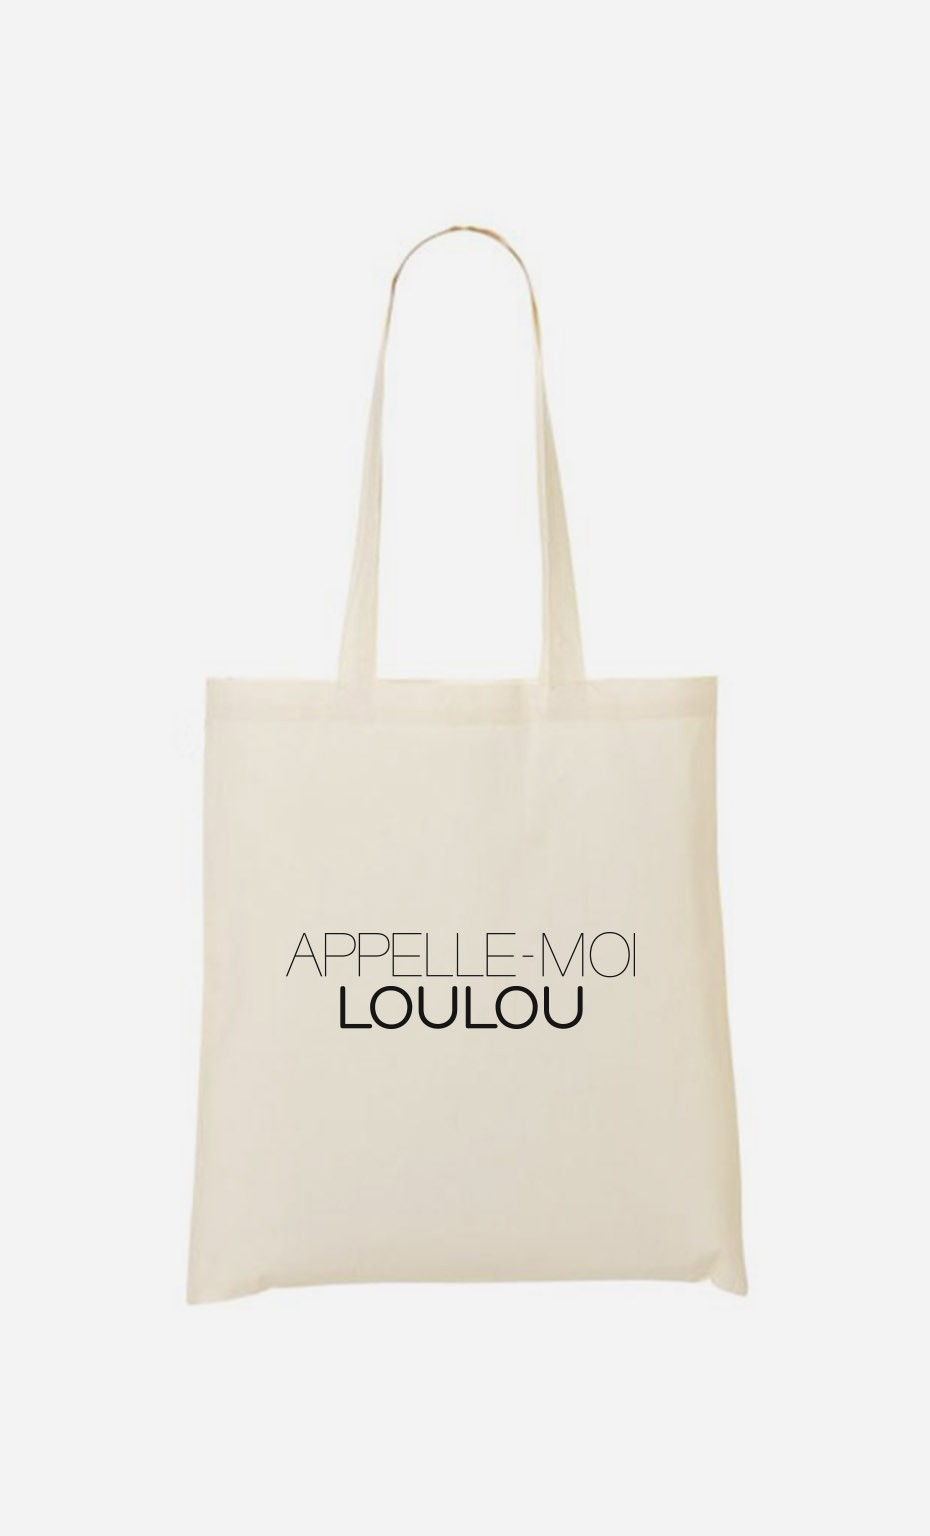 Tote Bag Appelle-Moi Loulou